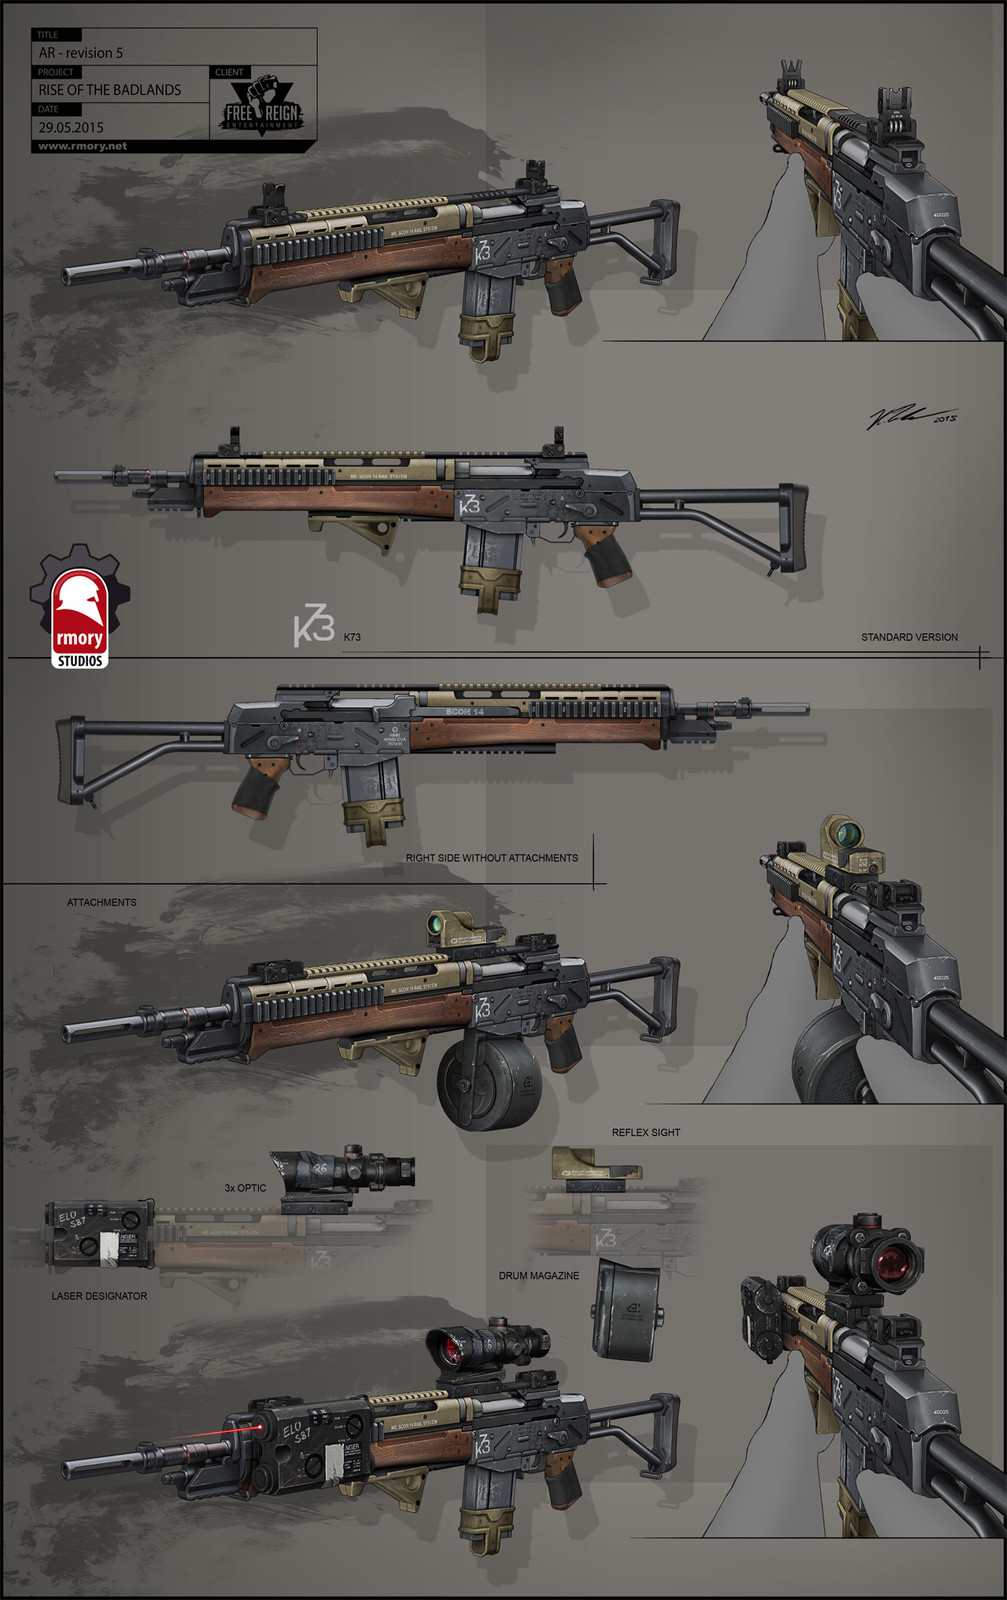 Rise of the Badlands Assault Rifle - rmory studios